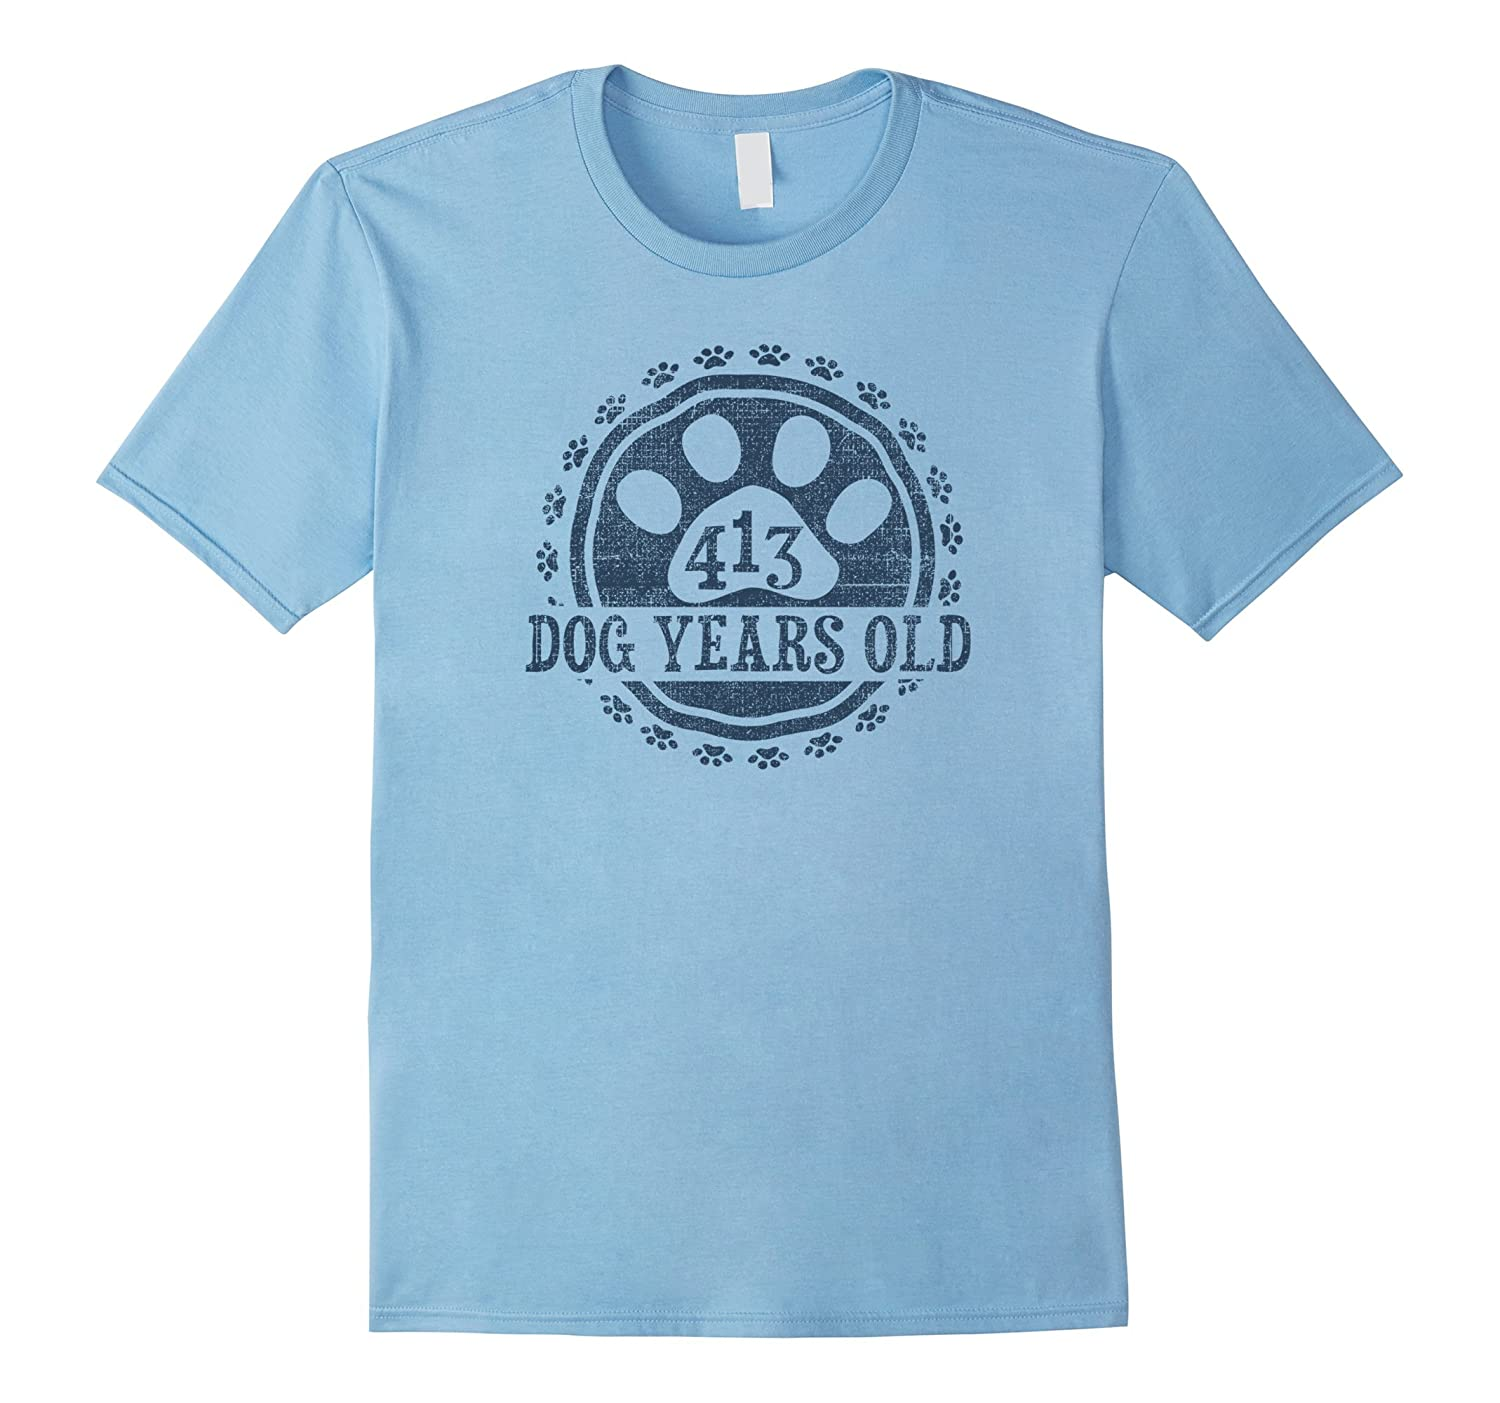 413 Dog Years Old 59 Human Yrs Old 59th Birthday Gift Shirt-TH